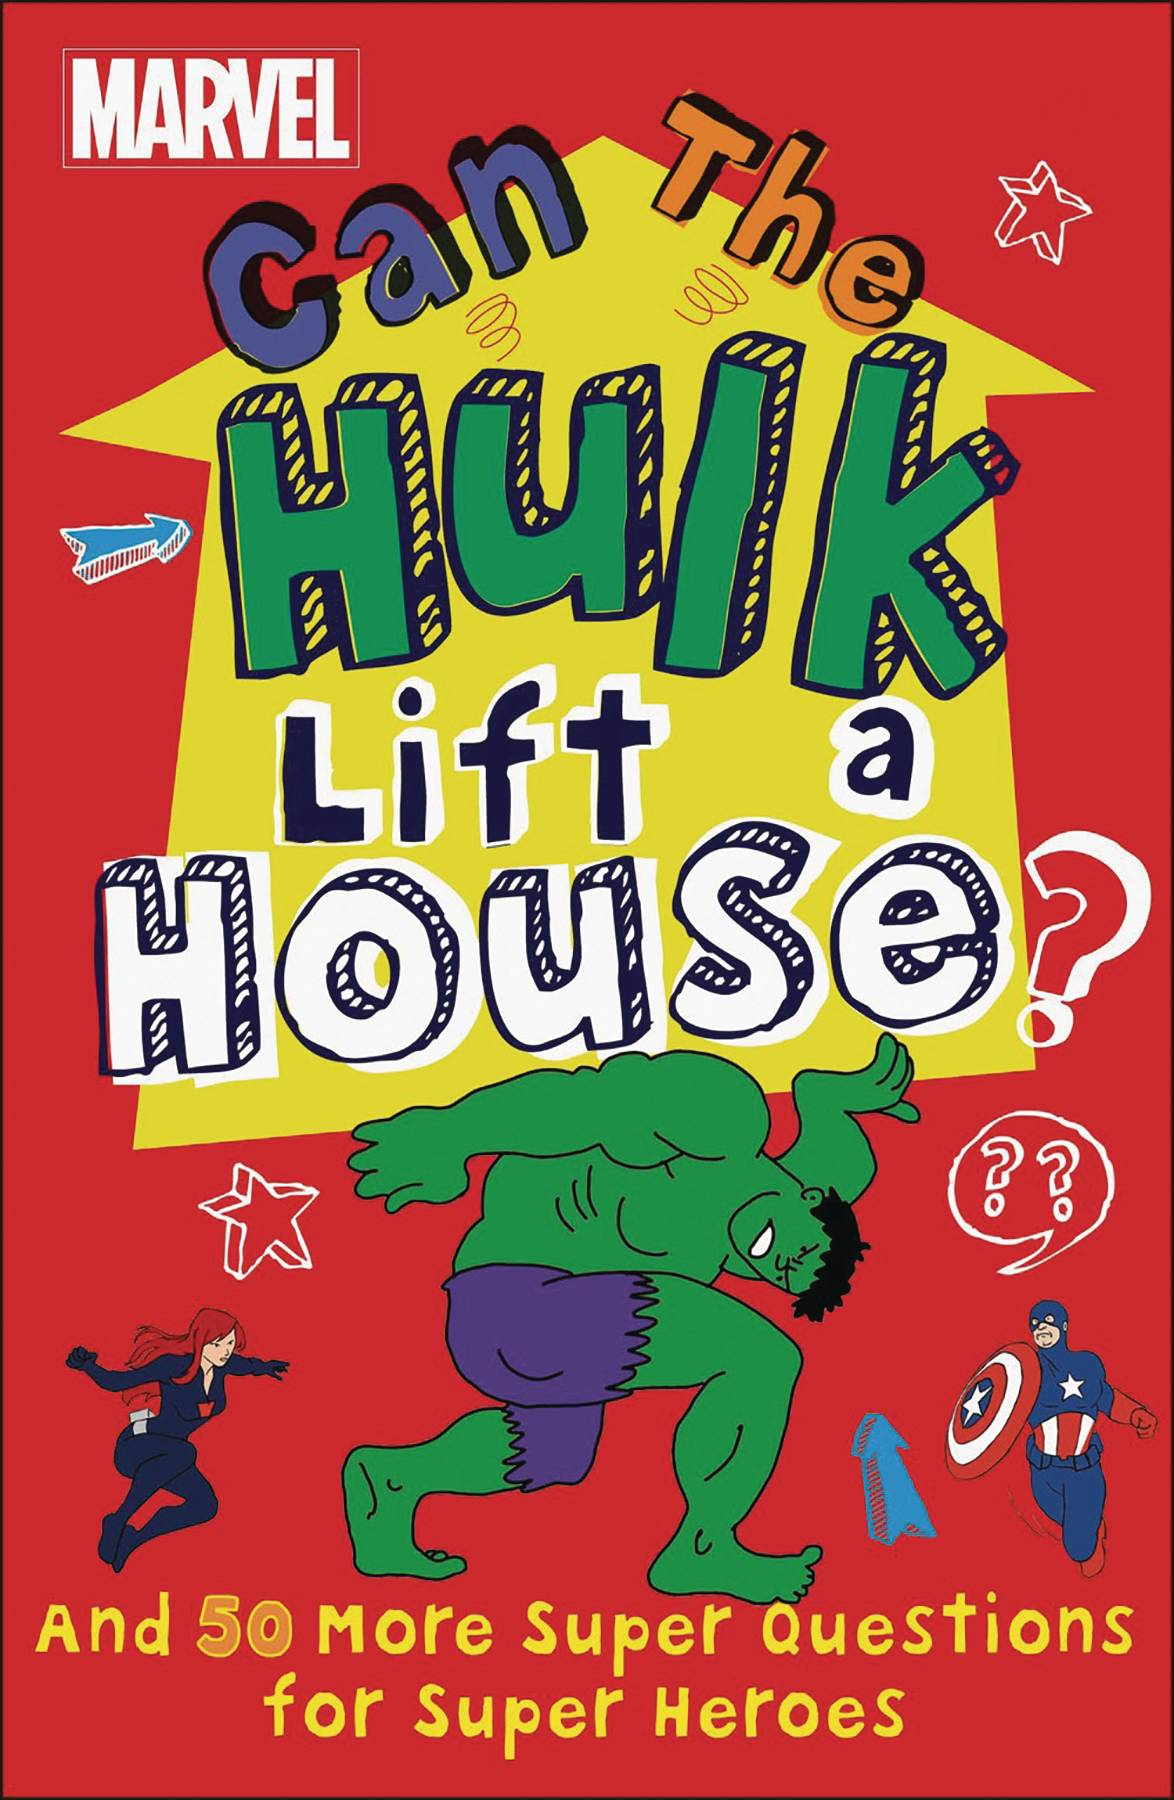 MARVEL CAN THE HULK LIFT A HOUSE HC